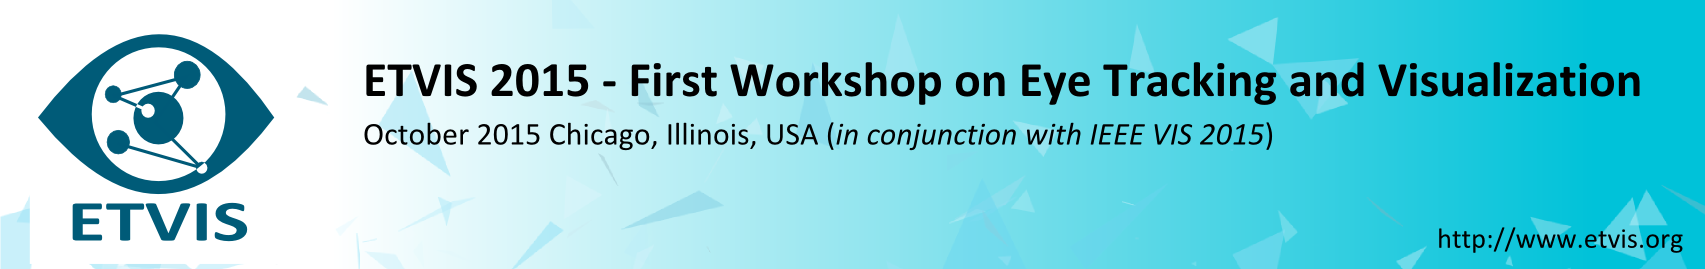 ETVIS 2015 - First Workshop on Eye Tracking and Visualization